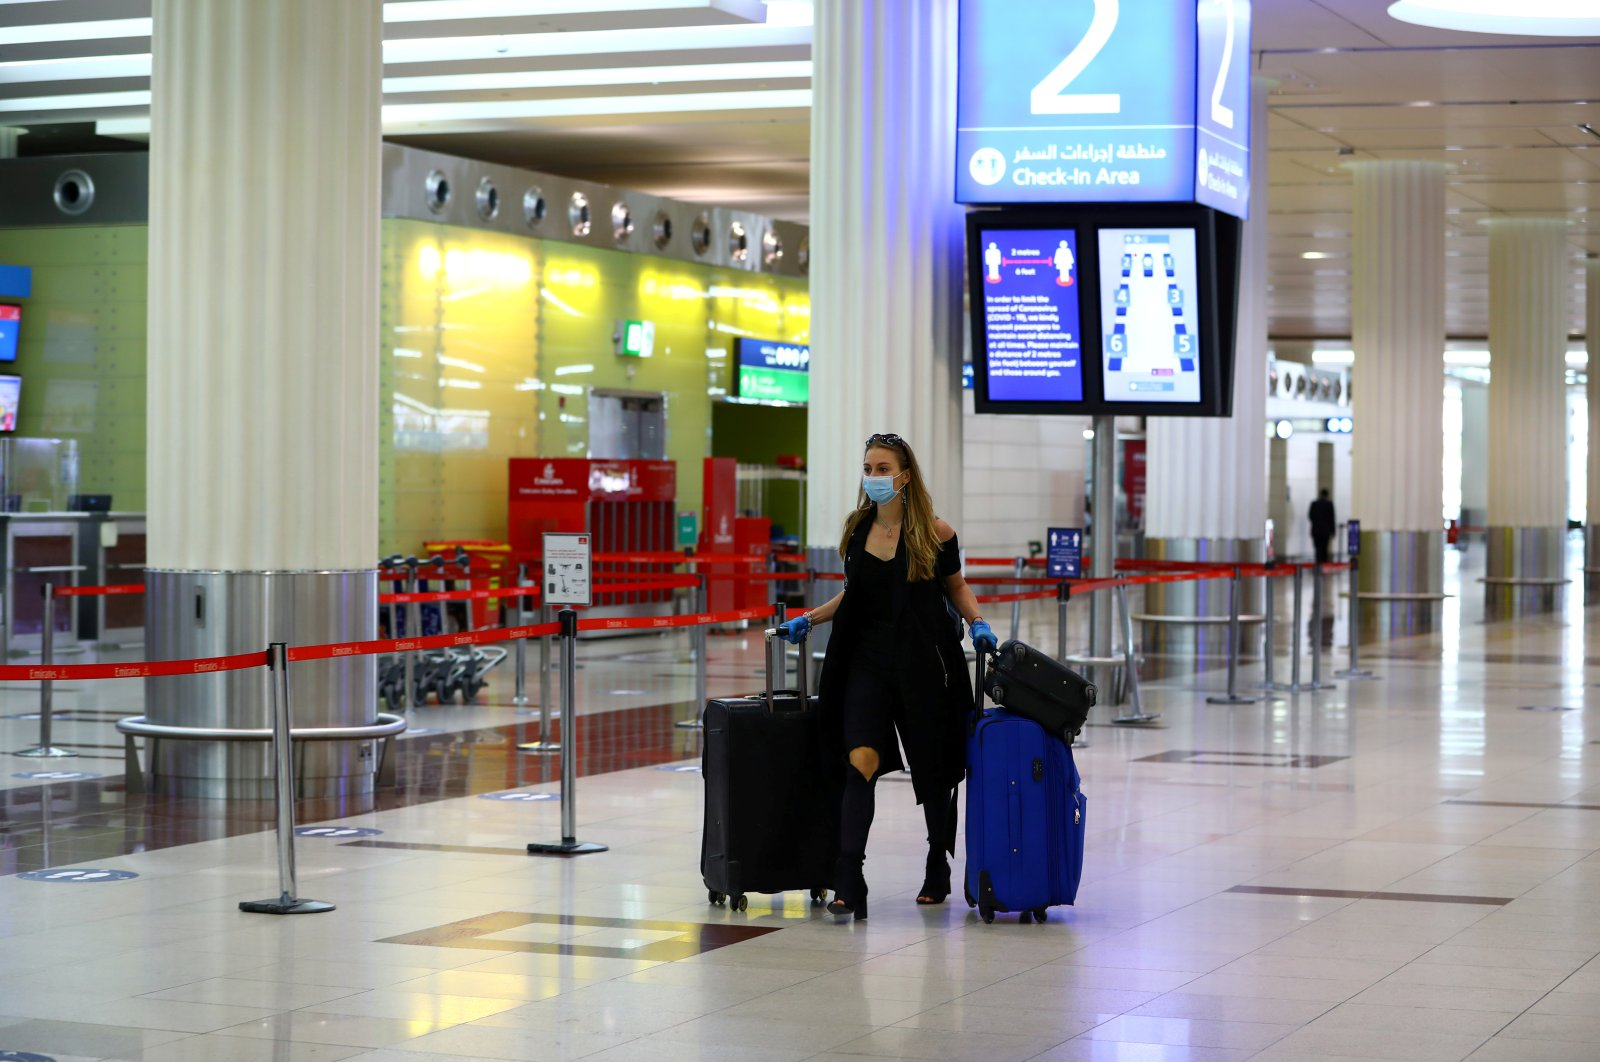 A passenger walks at Dubai International Airport, as Emirates Airlines resumed limited outbound passenger flights amid the outbreak of the coronavirus disease (COVID-19) in Dubai, UAE April 27, 2020. (Reuters Photo)